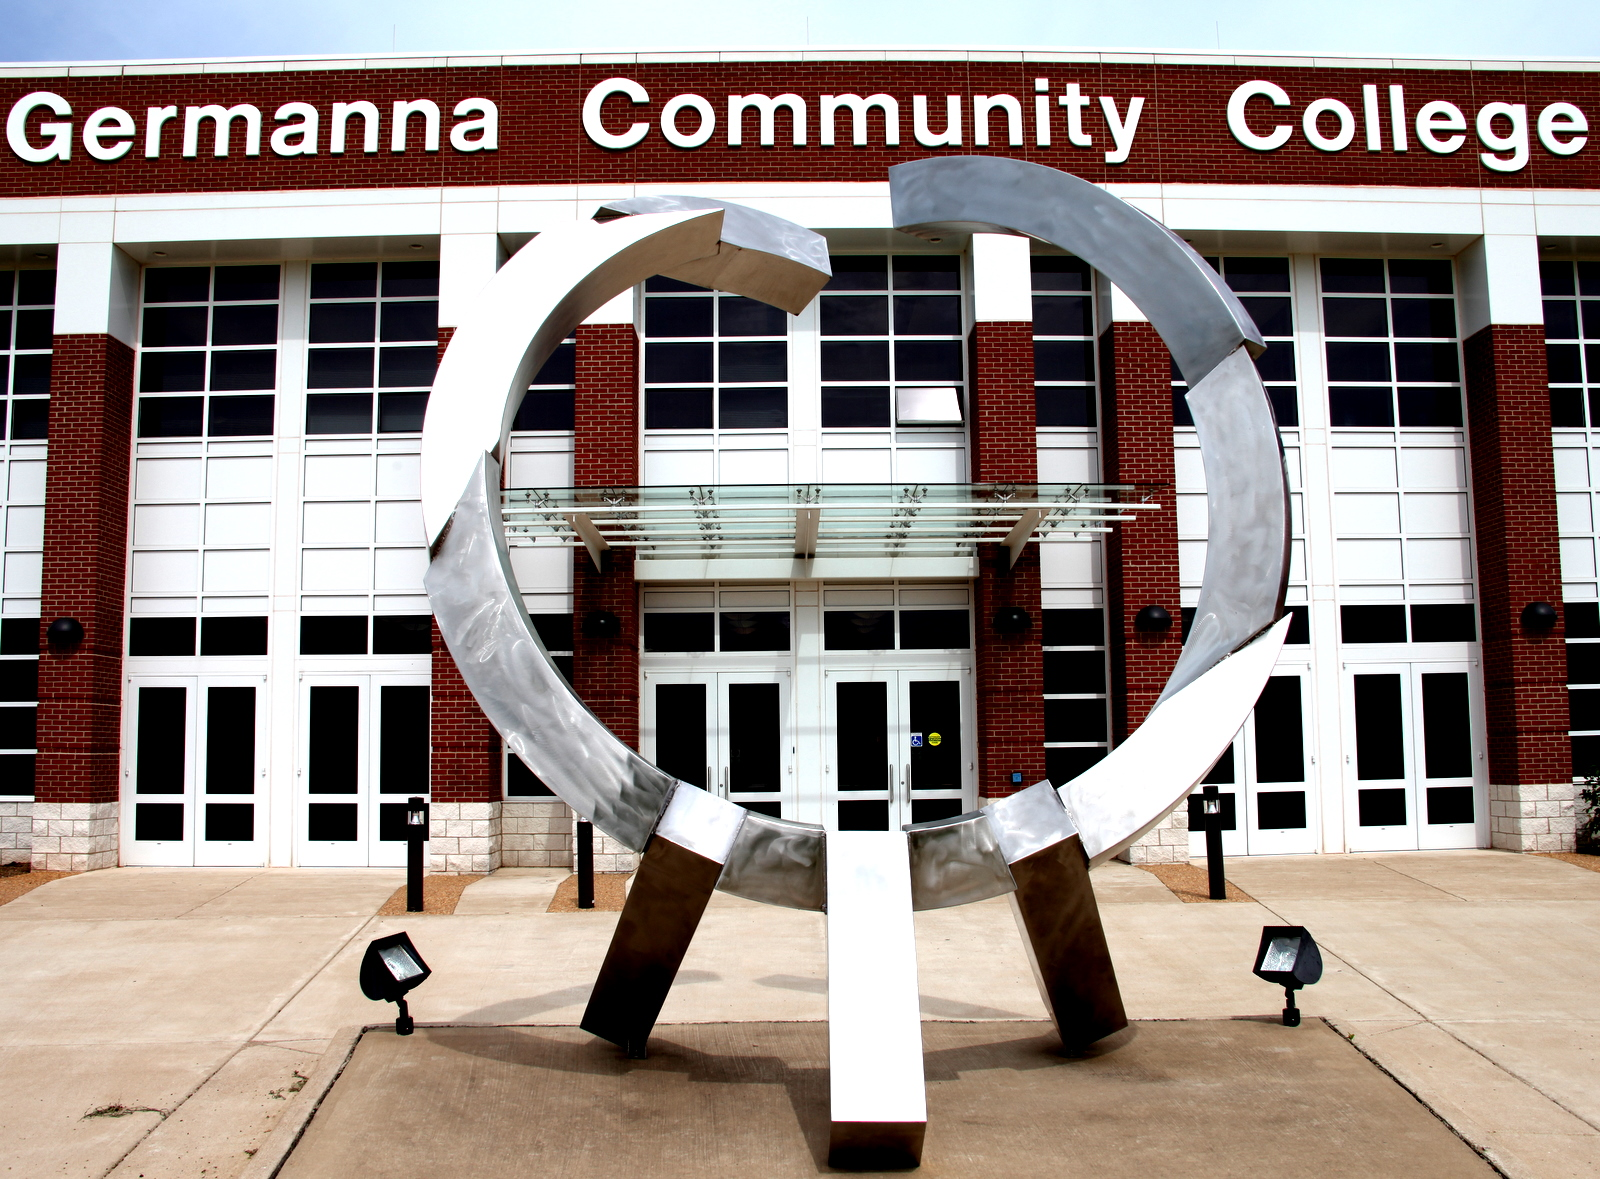 Germanna Community College News Blog: Survey says Germanna ...